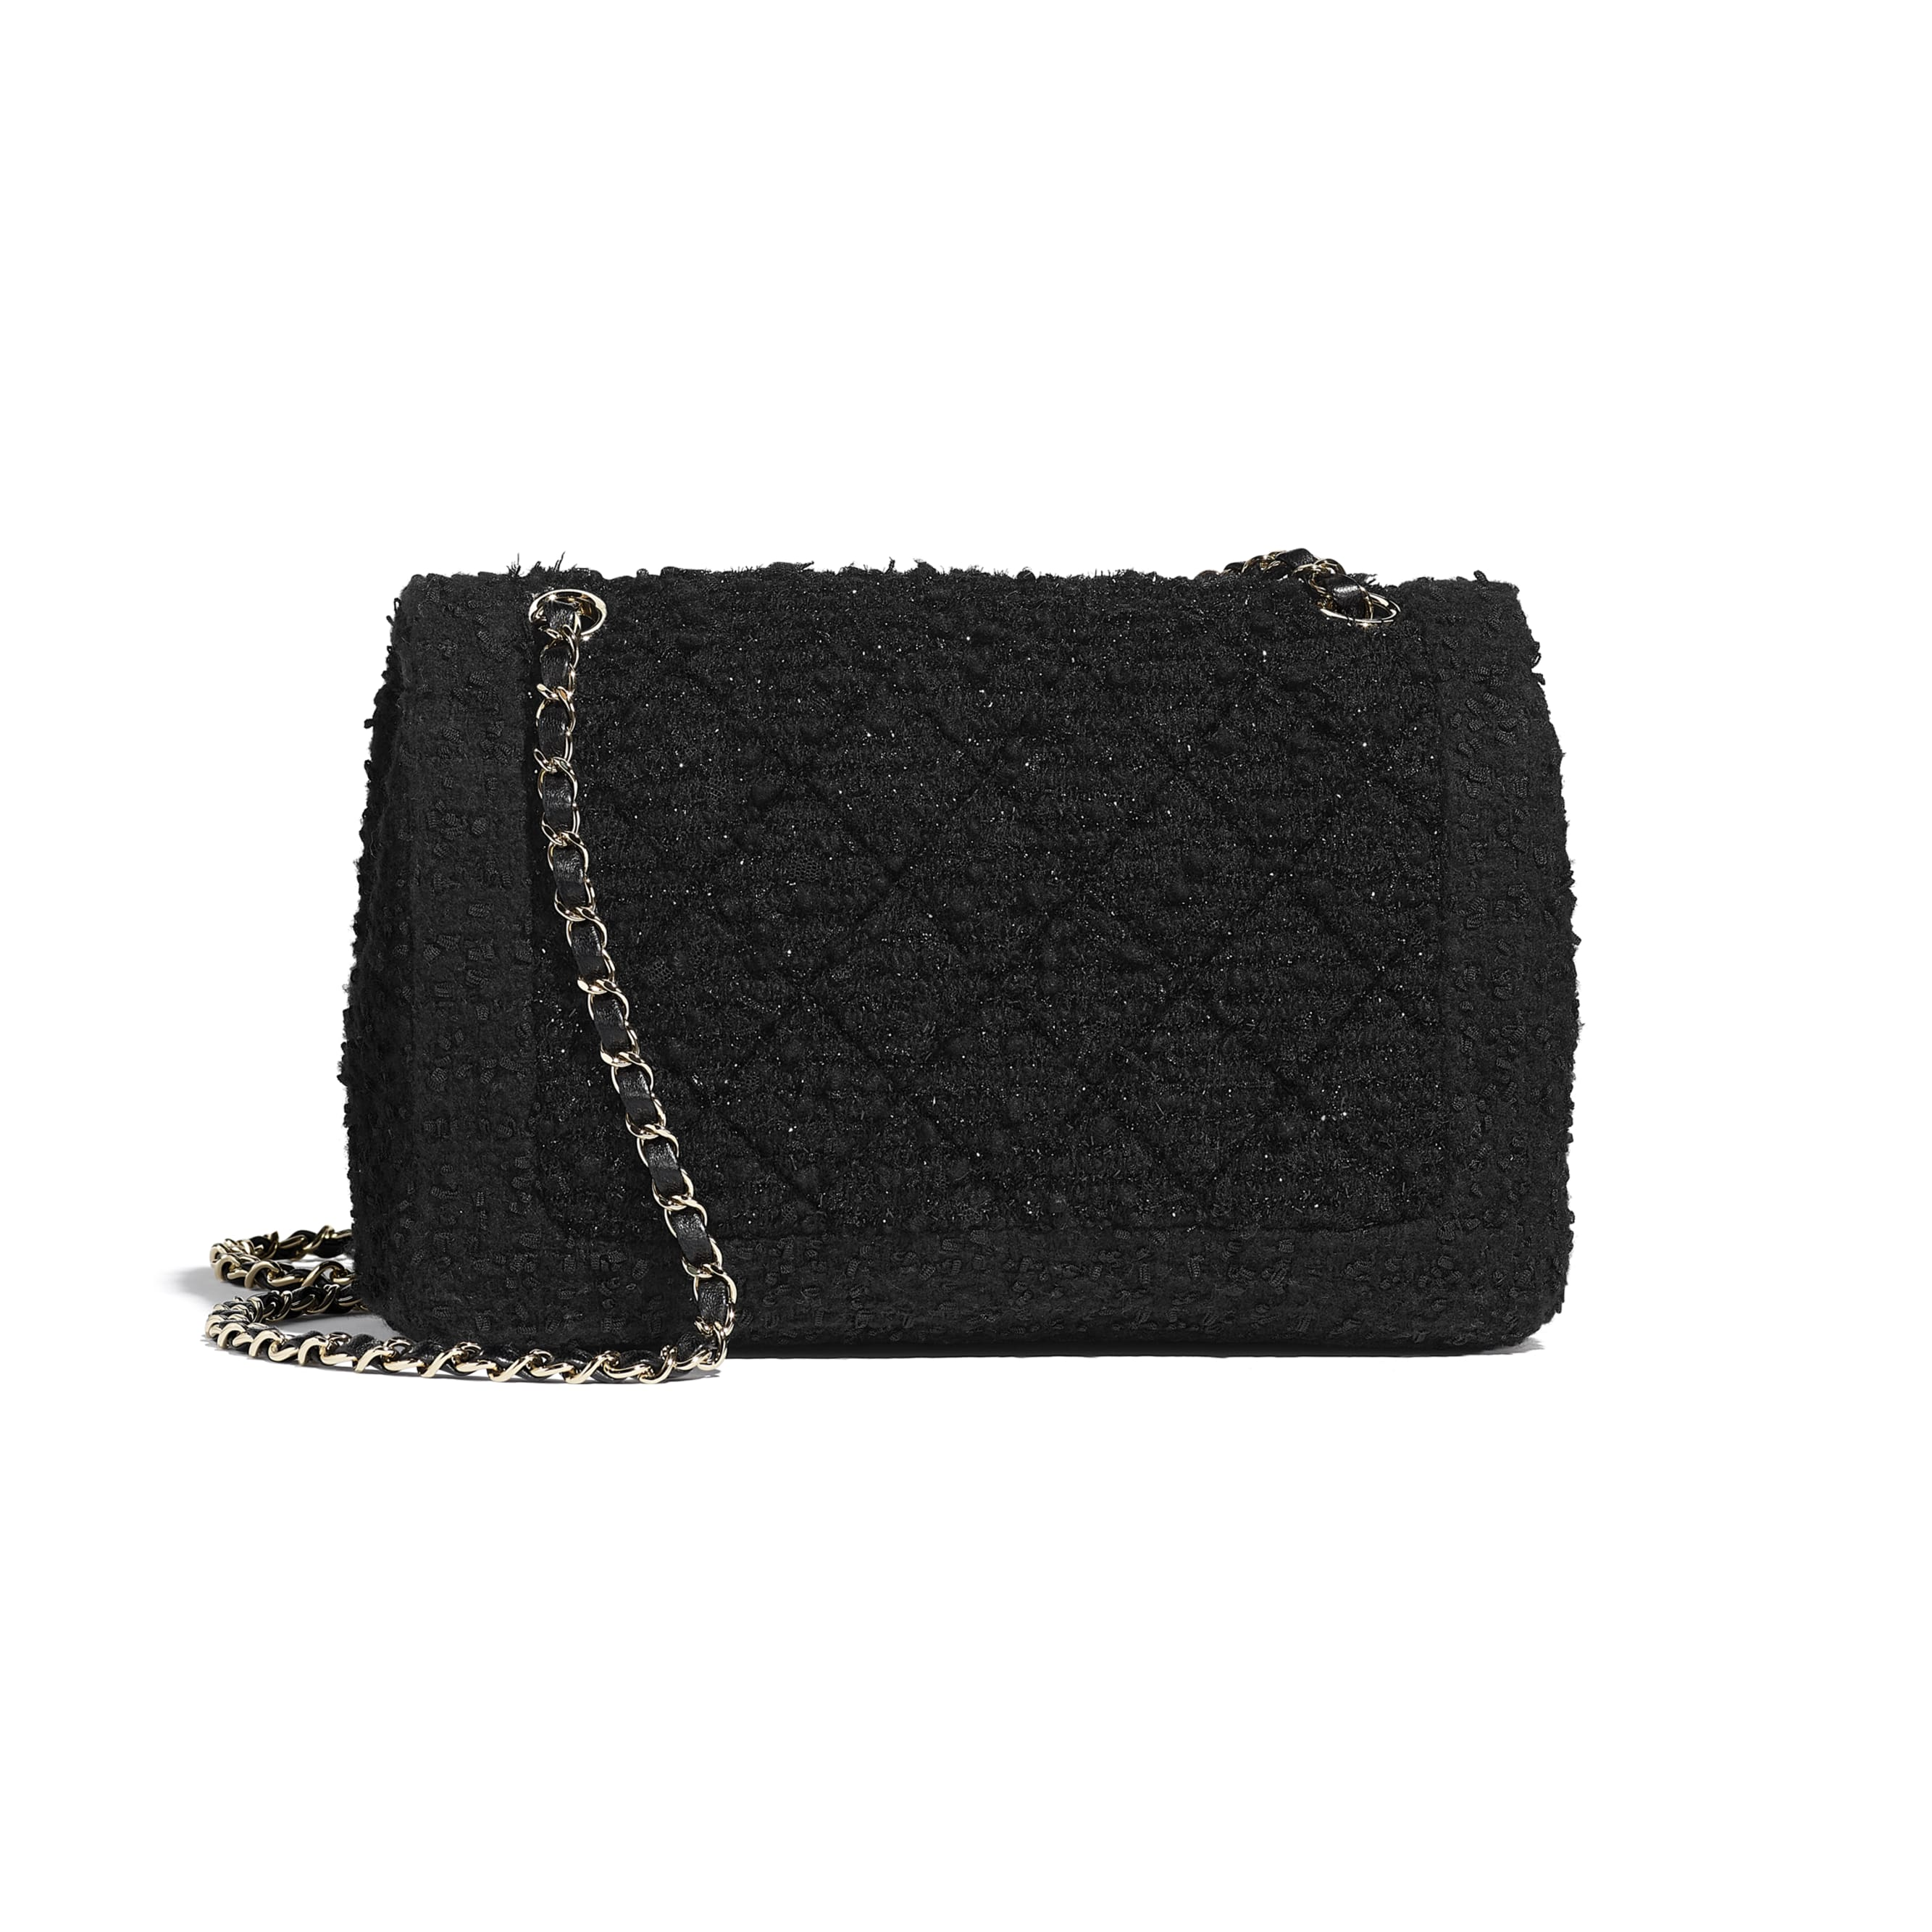 Flap Bag - Black - Tweed & Gold-Tone Metal - CHANEL - Alternative view - see standard sized version